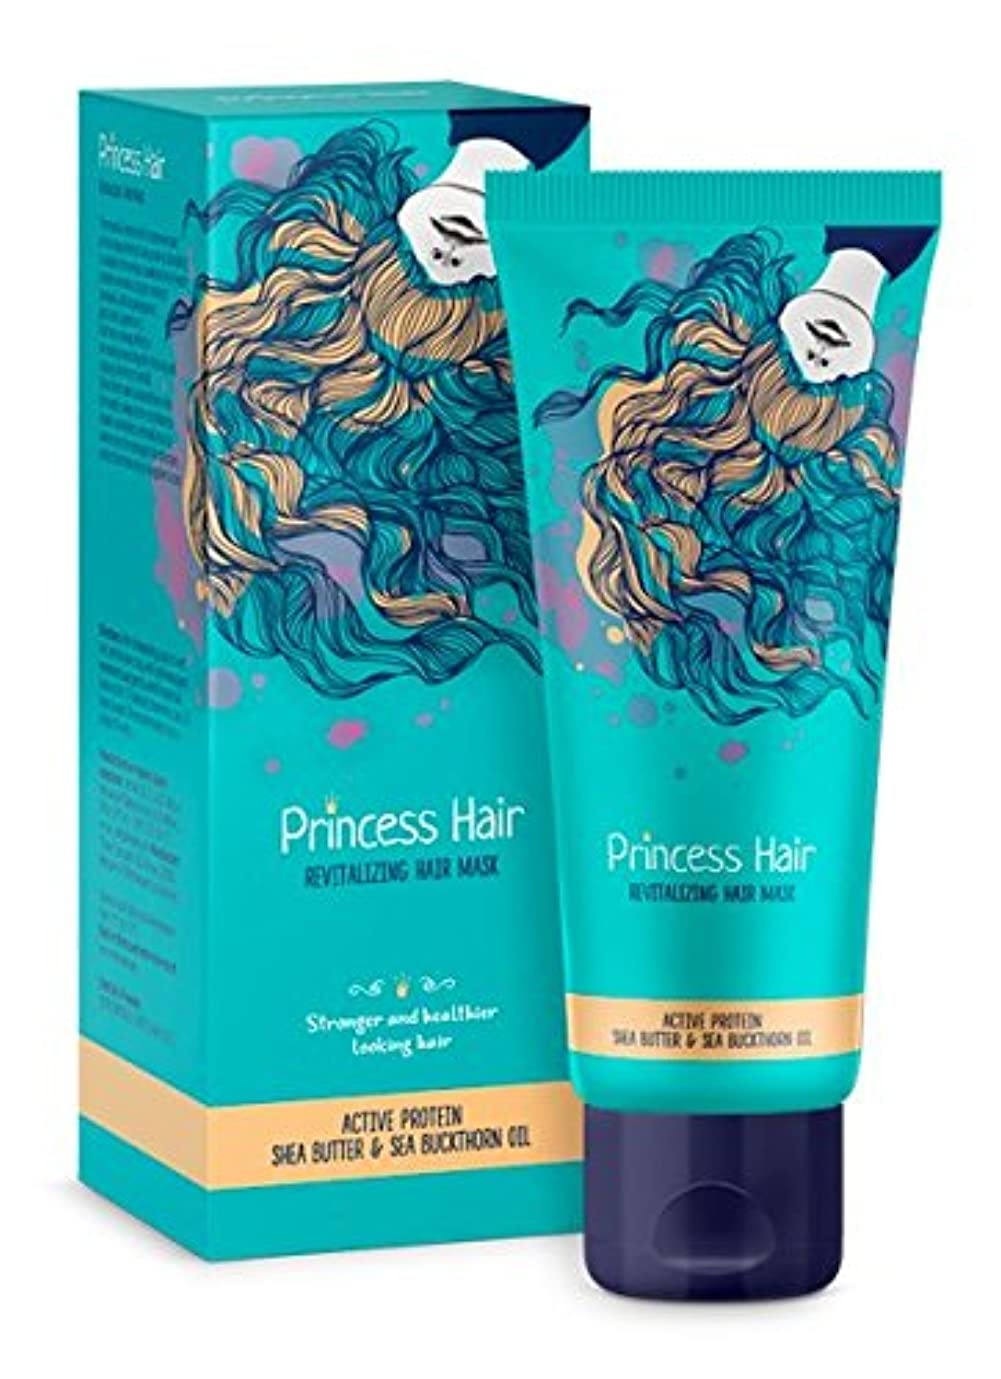 兄弟愛発言する慢な育毛マスク Princess Hair, Mask for hair growth 75ml Hendel's Garden